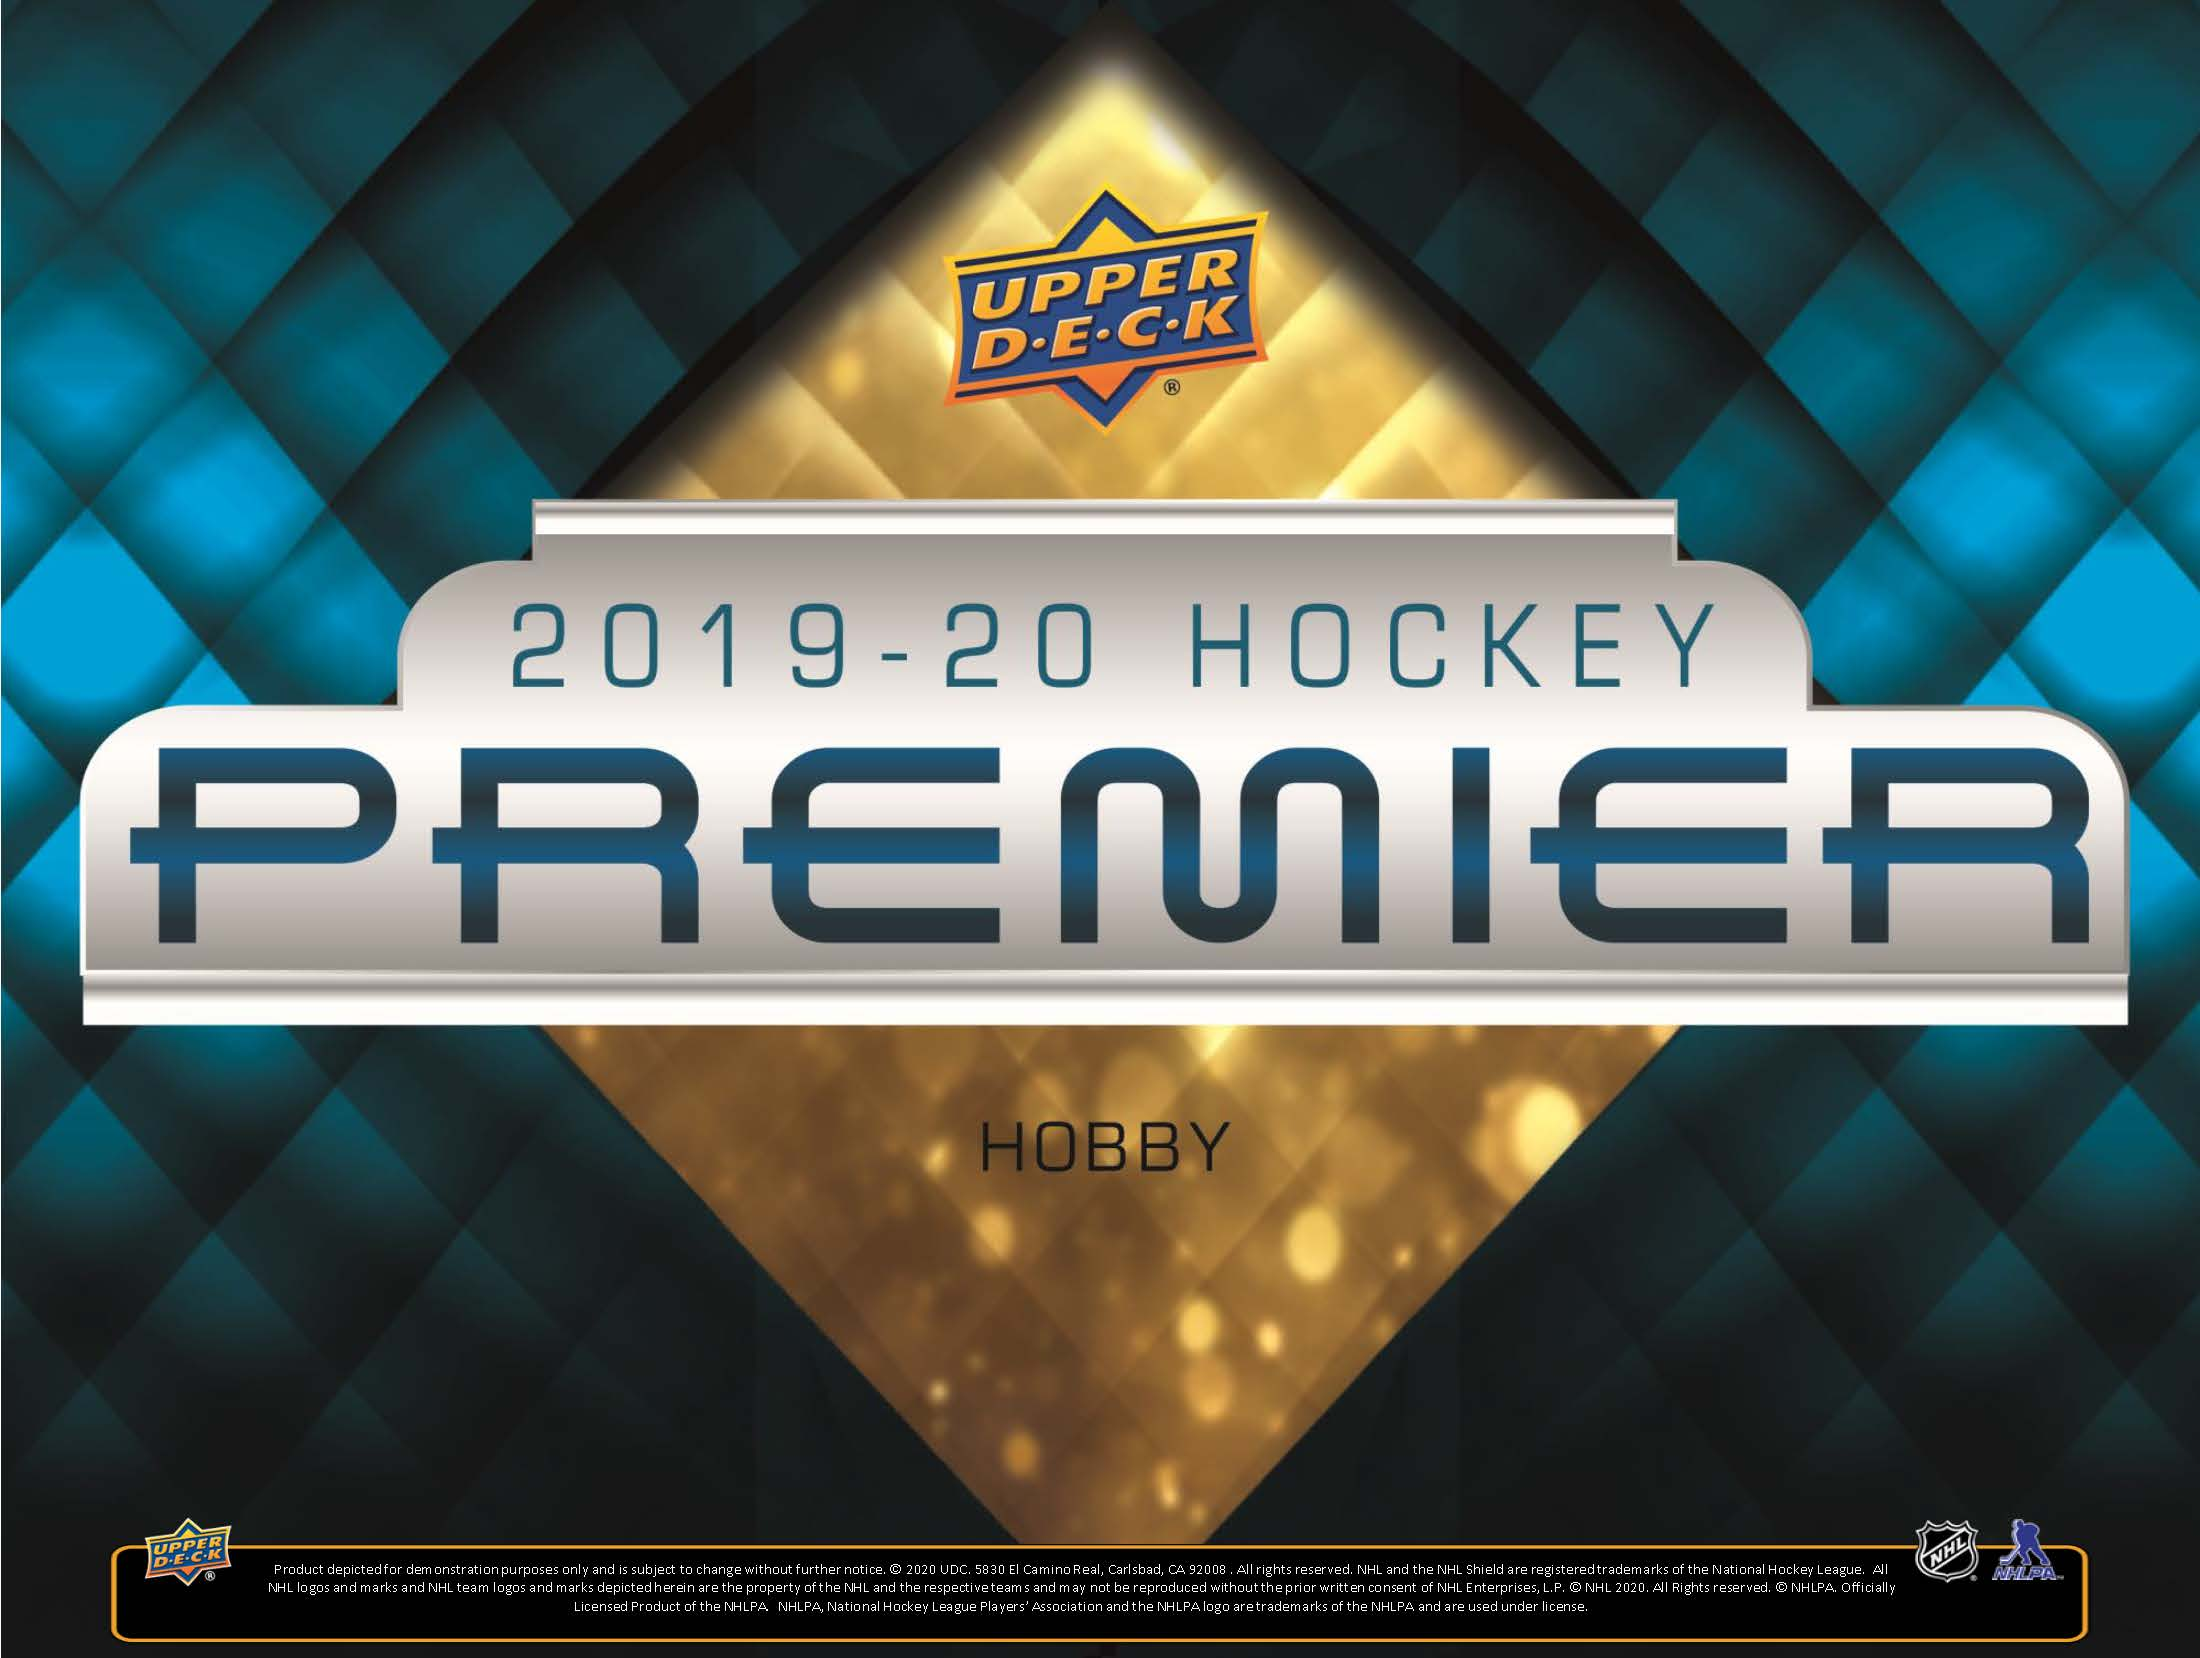 2019-20 Upper Deck Premier Hockey Checklist